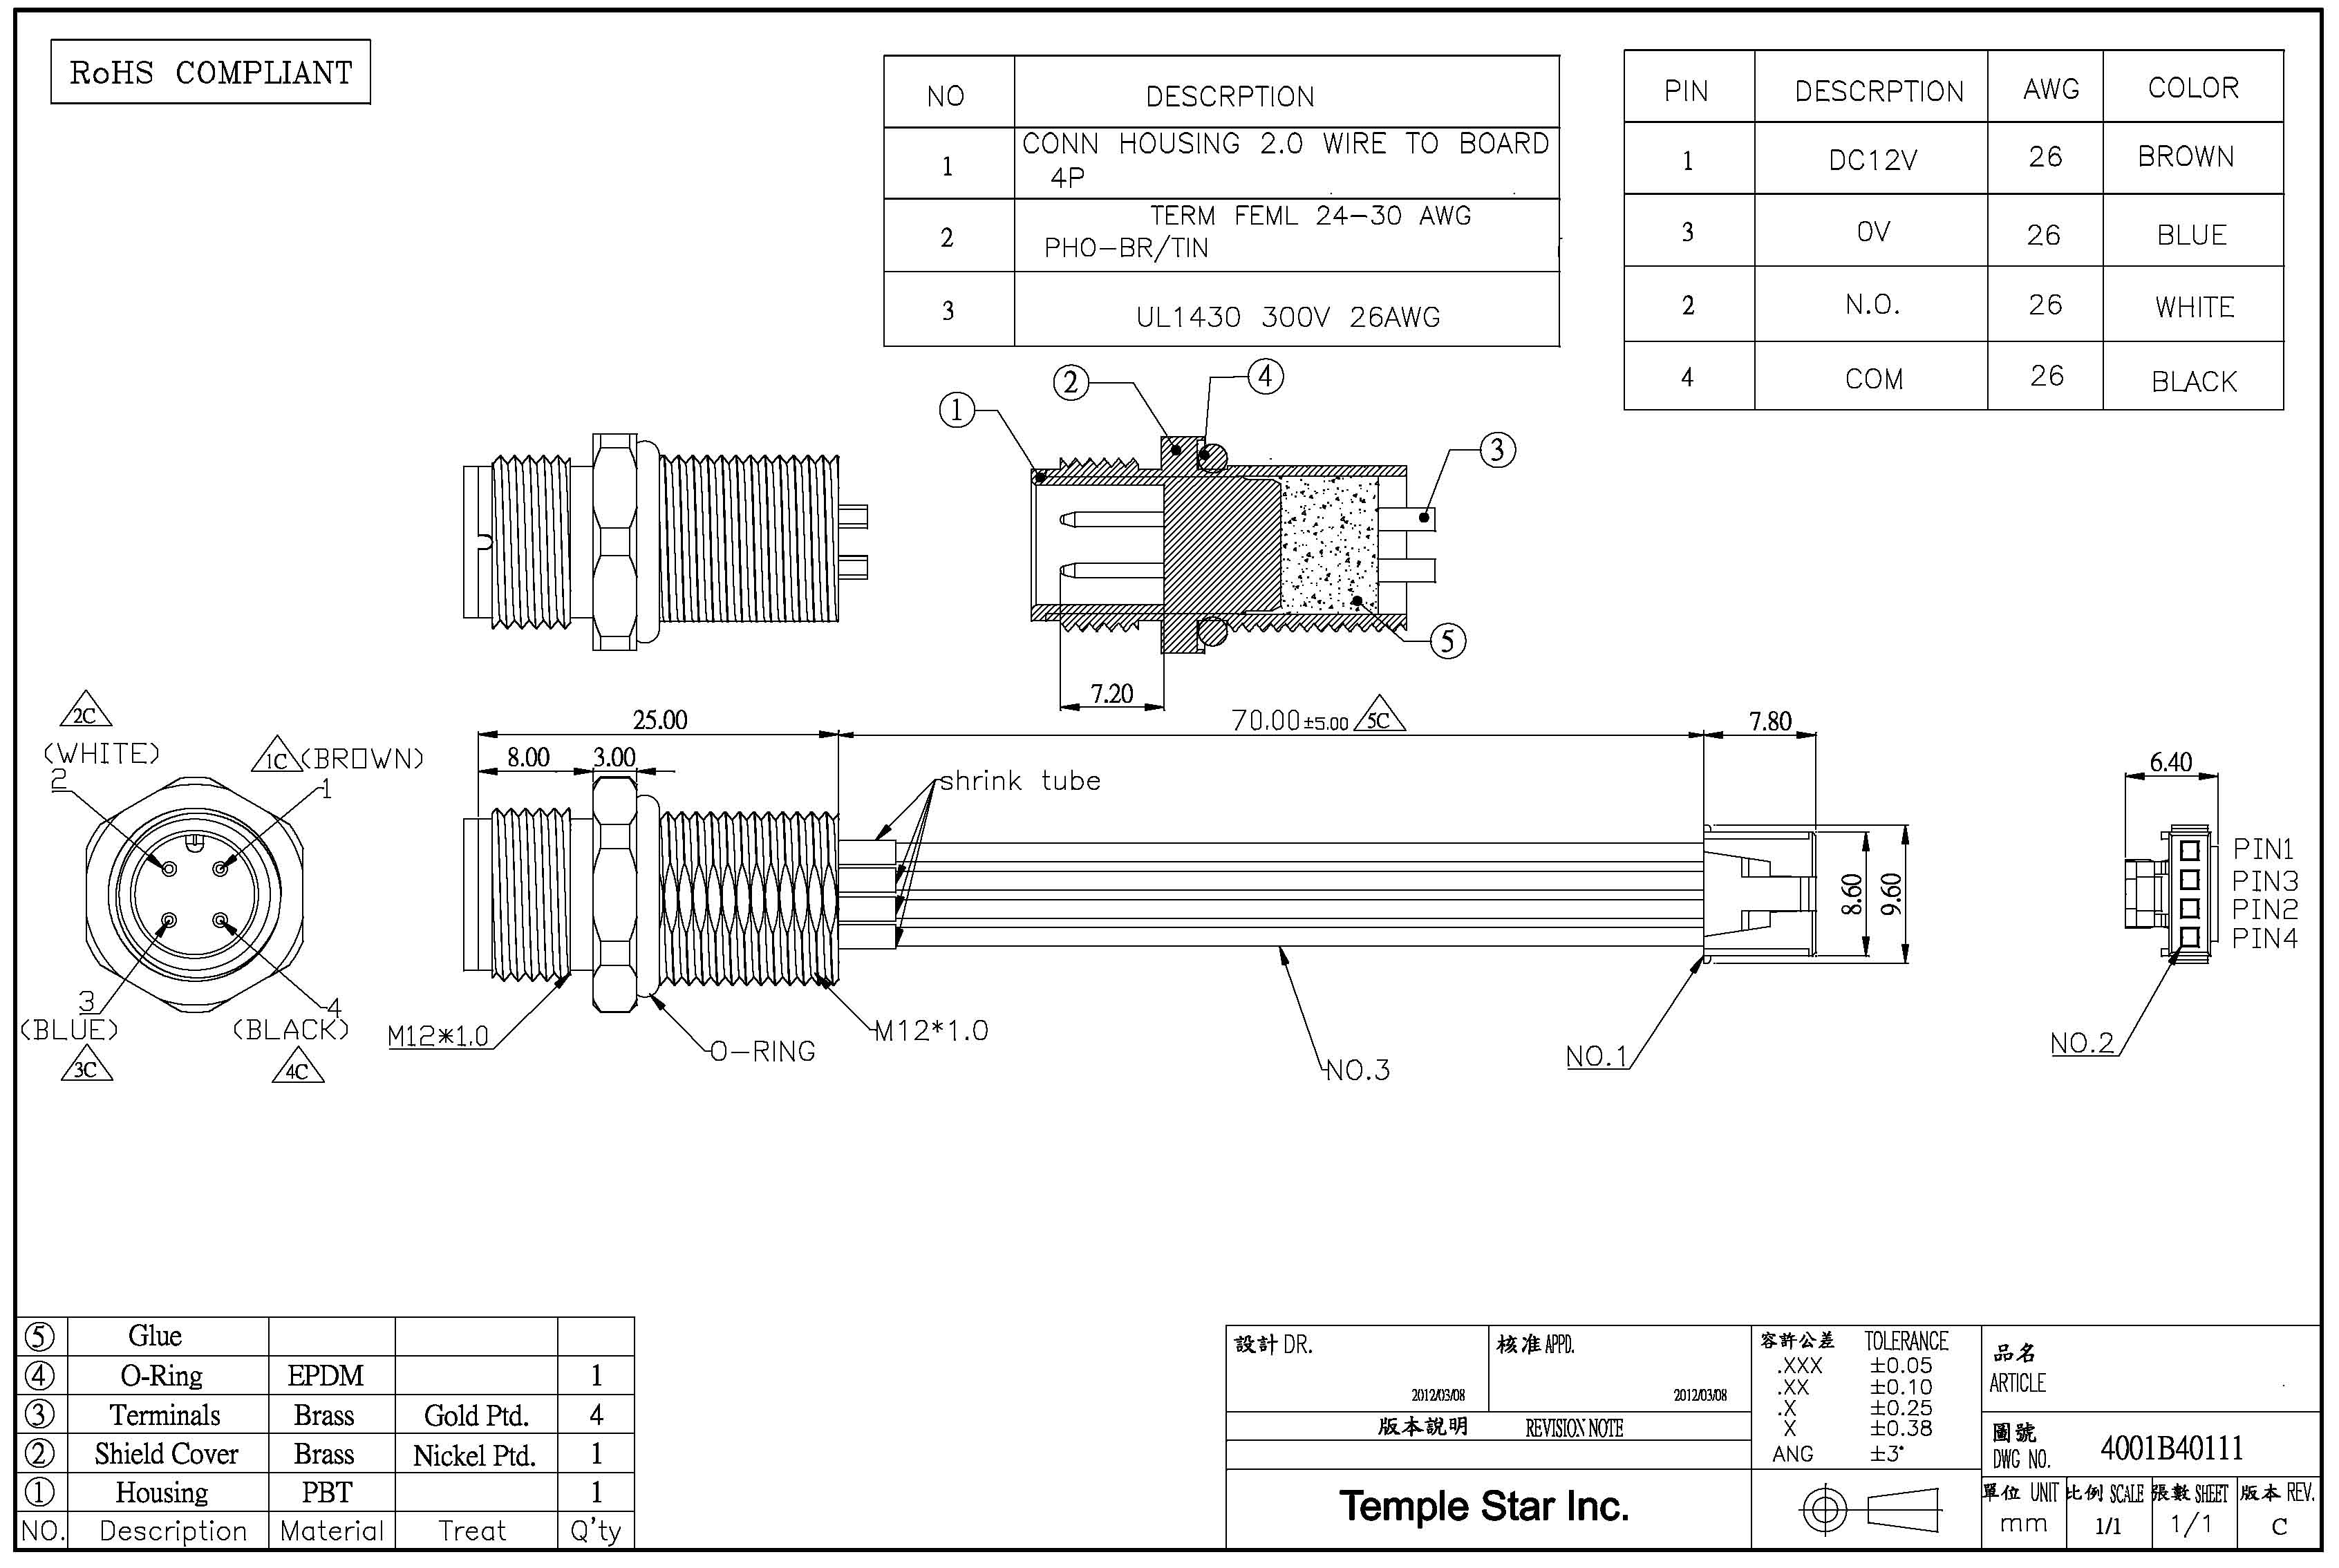 on q rj45 wiring diagram 2 2005 saab 9 3 temple star inc original manufacturers direct price